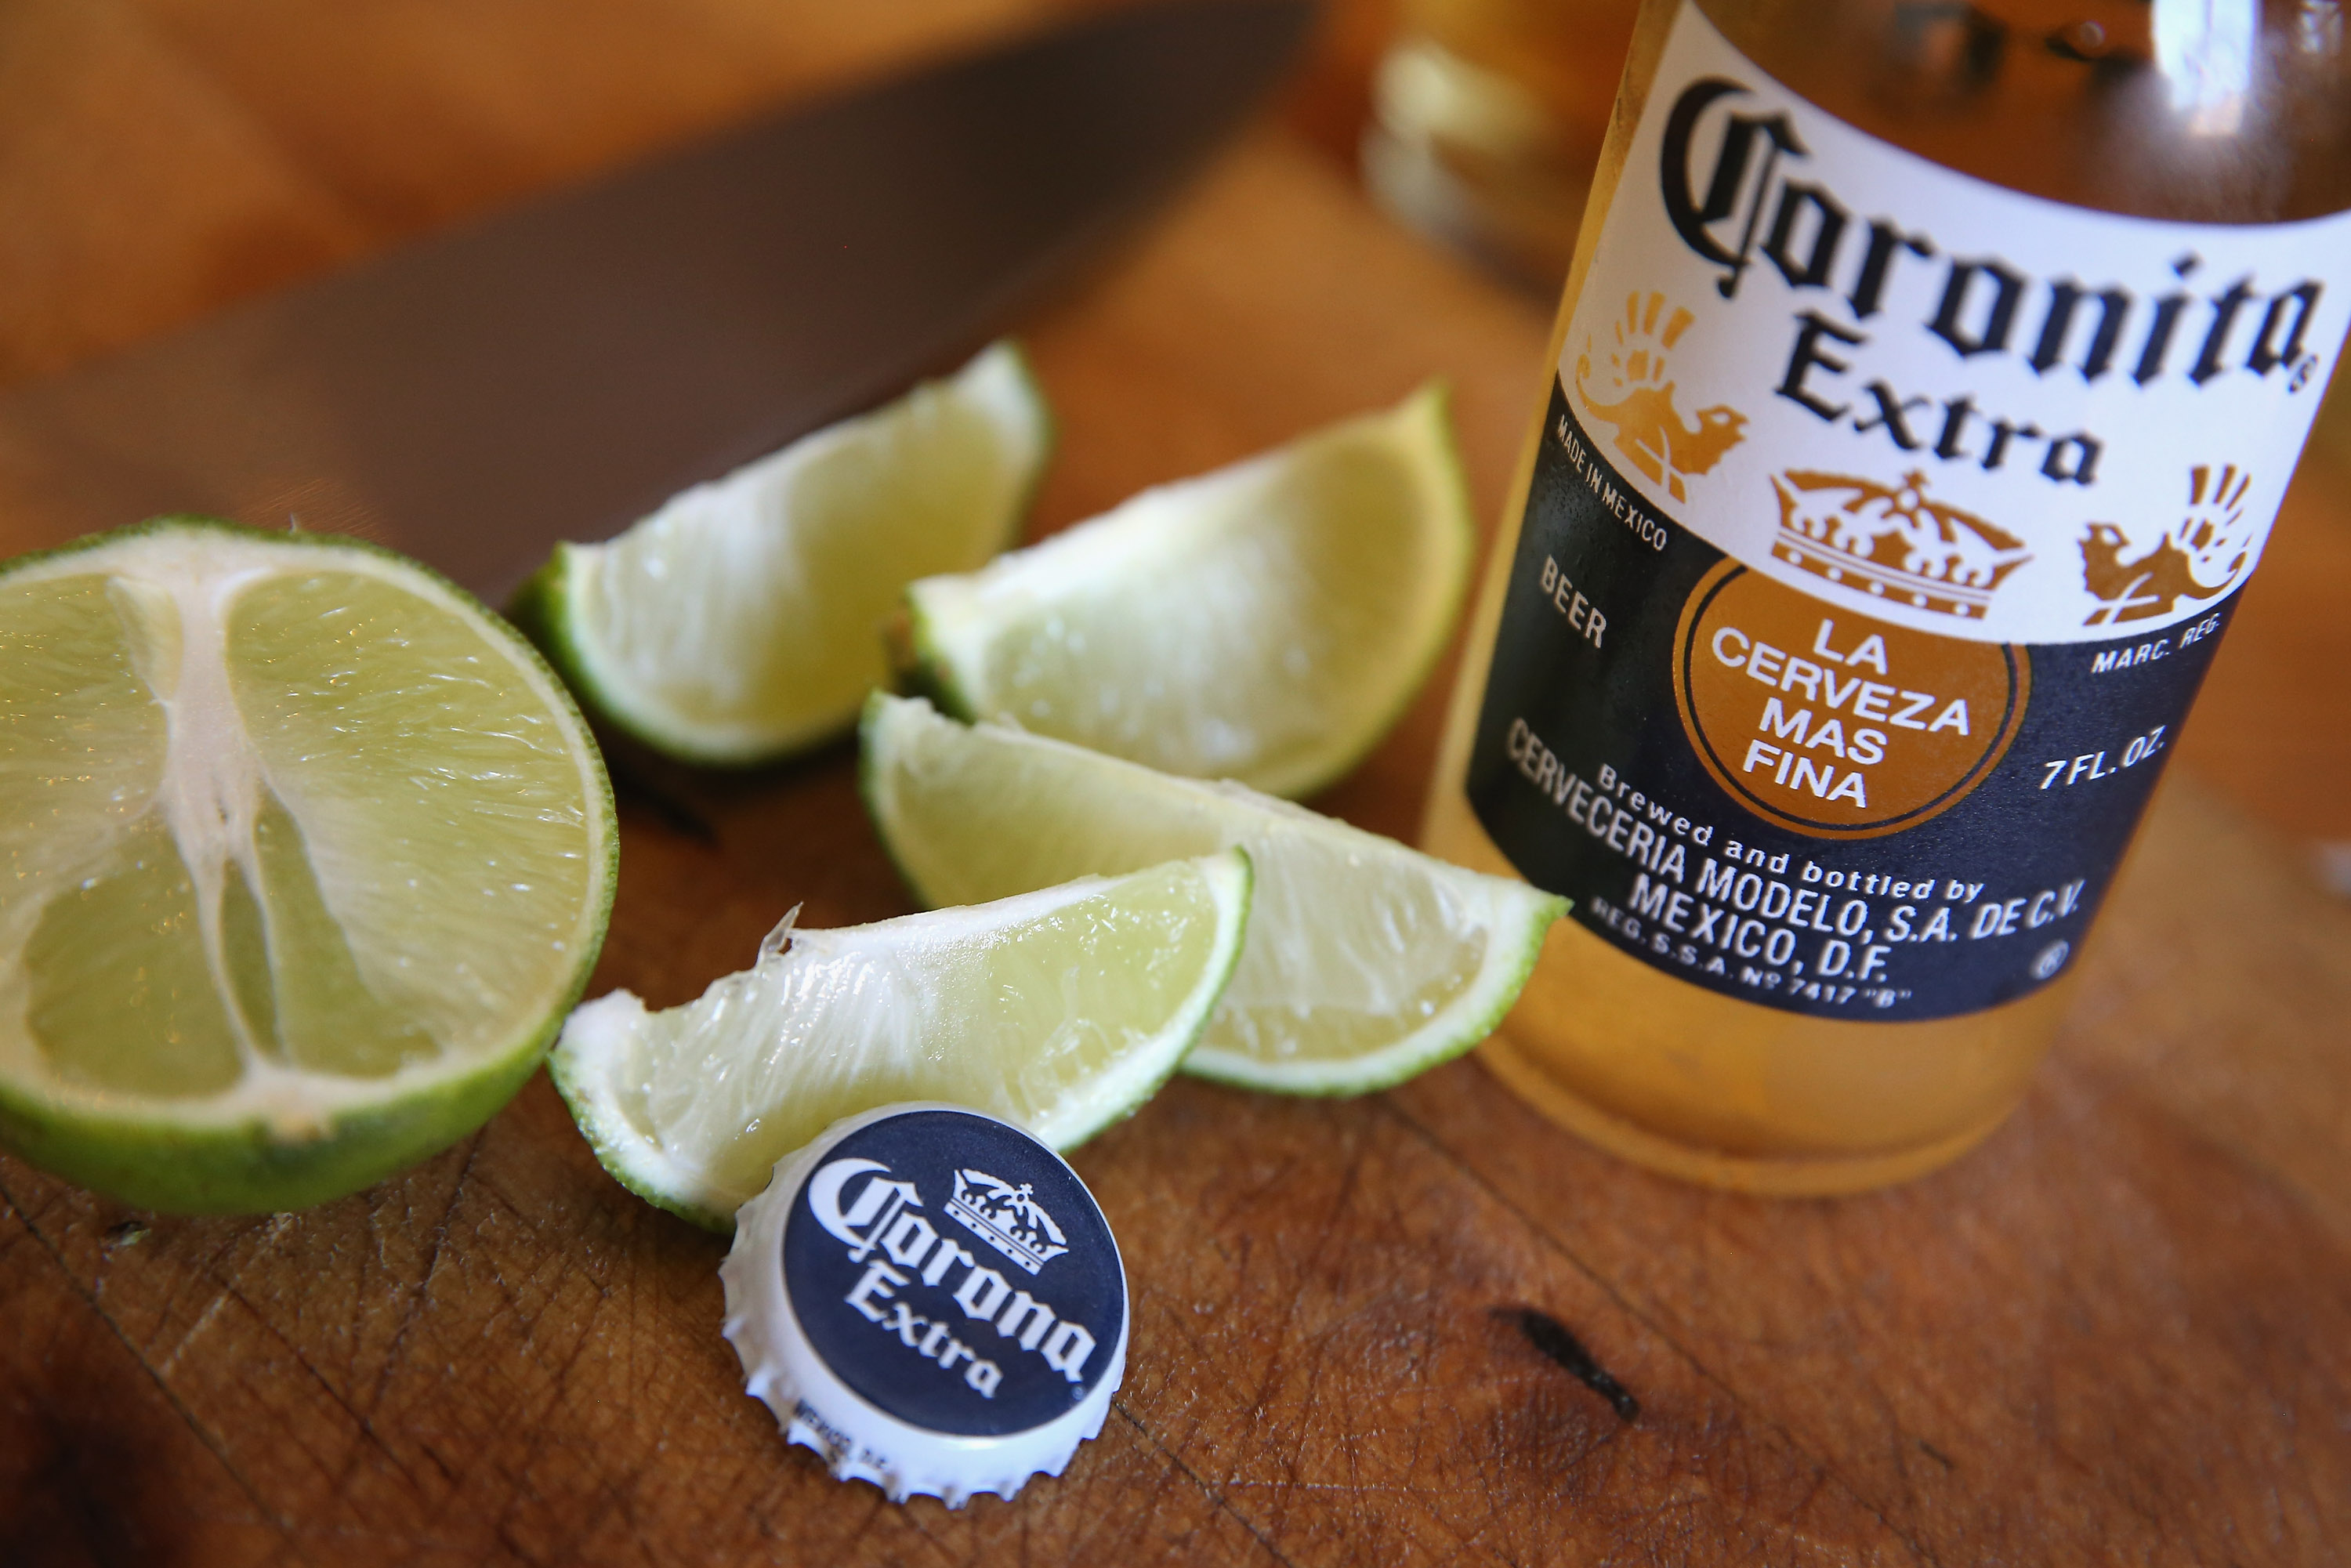 In this photo illustration, bottles of Corona beer are shown on June 7, 2013 in Chicago, Illinois.